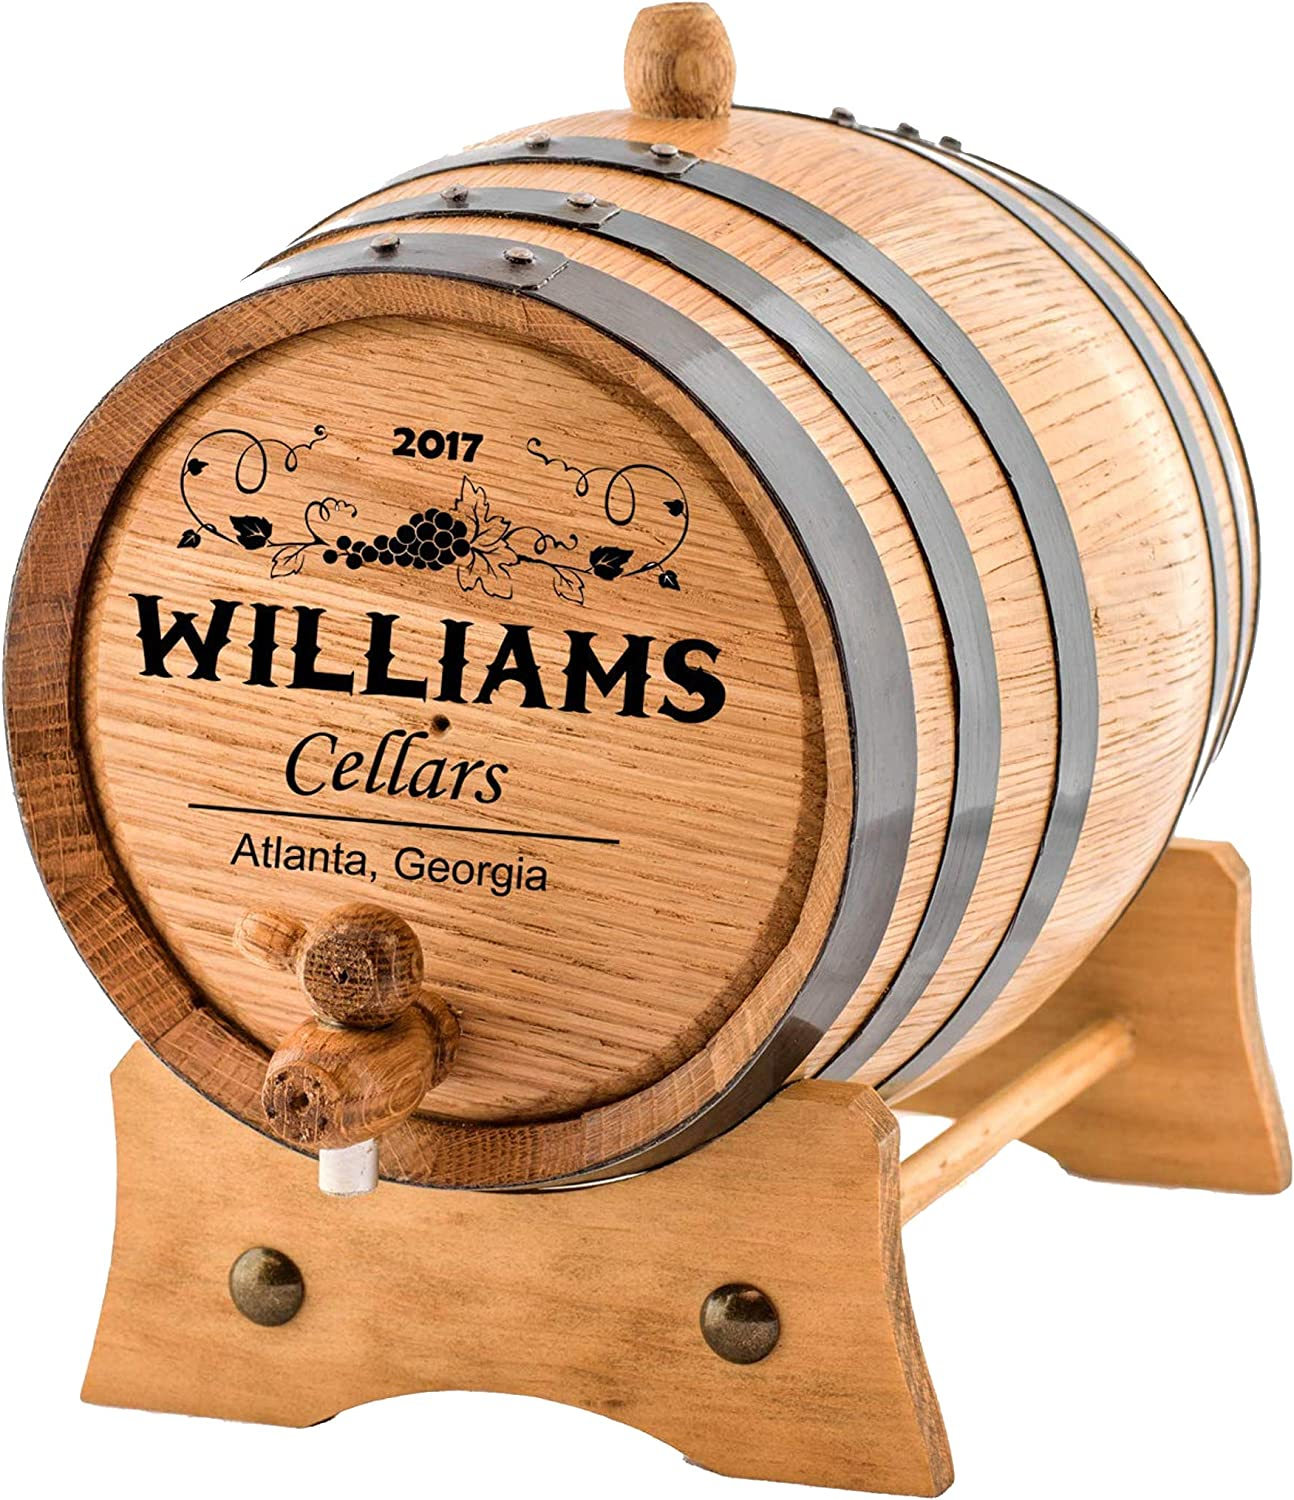 The Outlaw Kit from Skeeters Reserve Outlaw Gear Made by American Oak Barrel - Personalized Whiskey Making Kit 063 Oak, Black Hoops, 1 Liter - Create Your Own Southern Whiskey